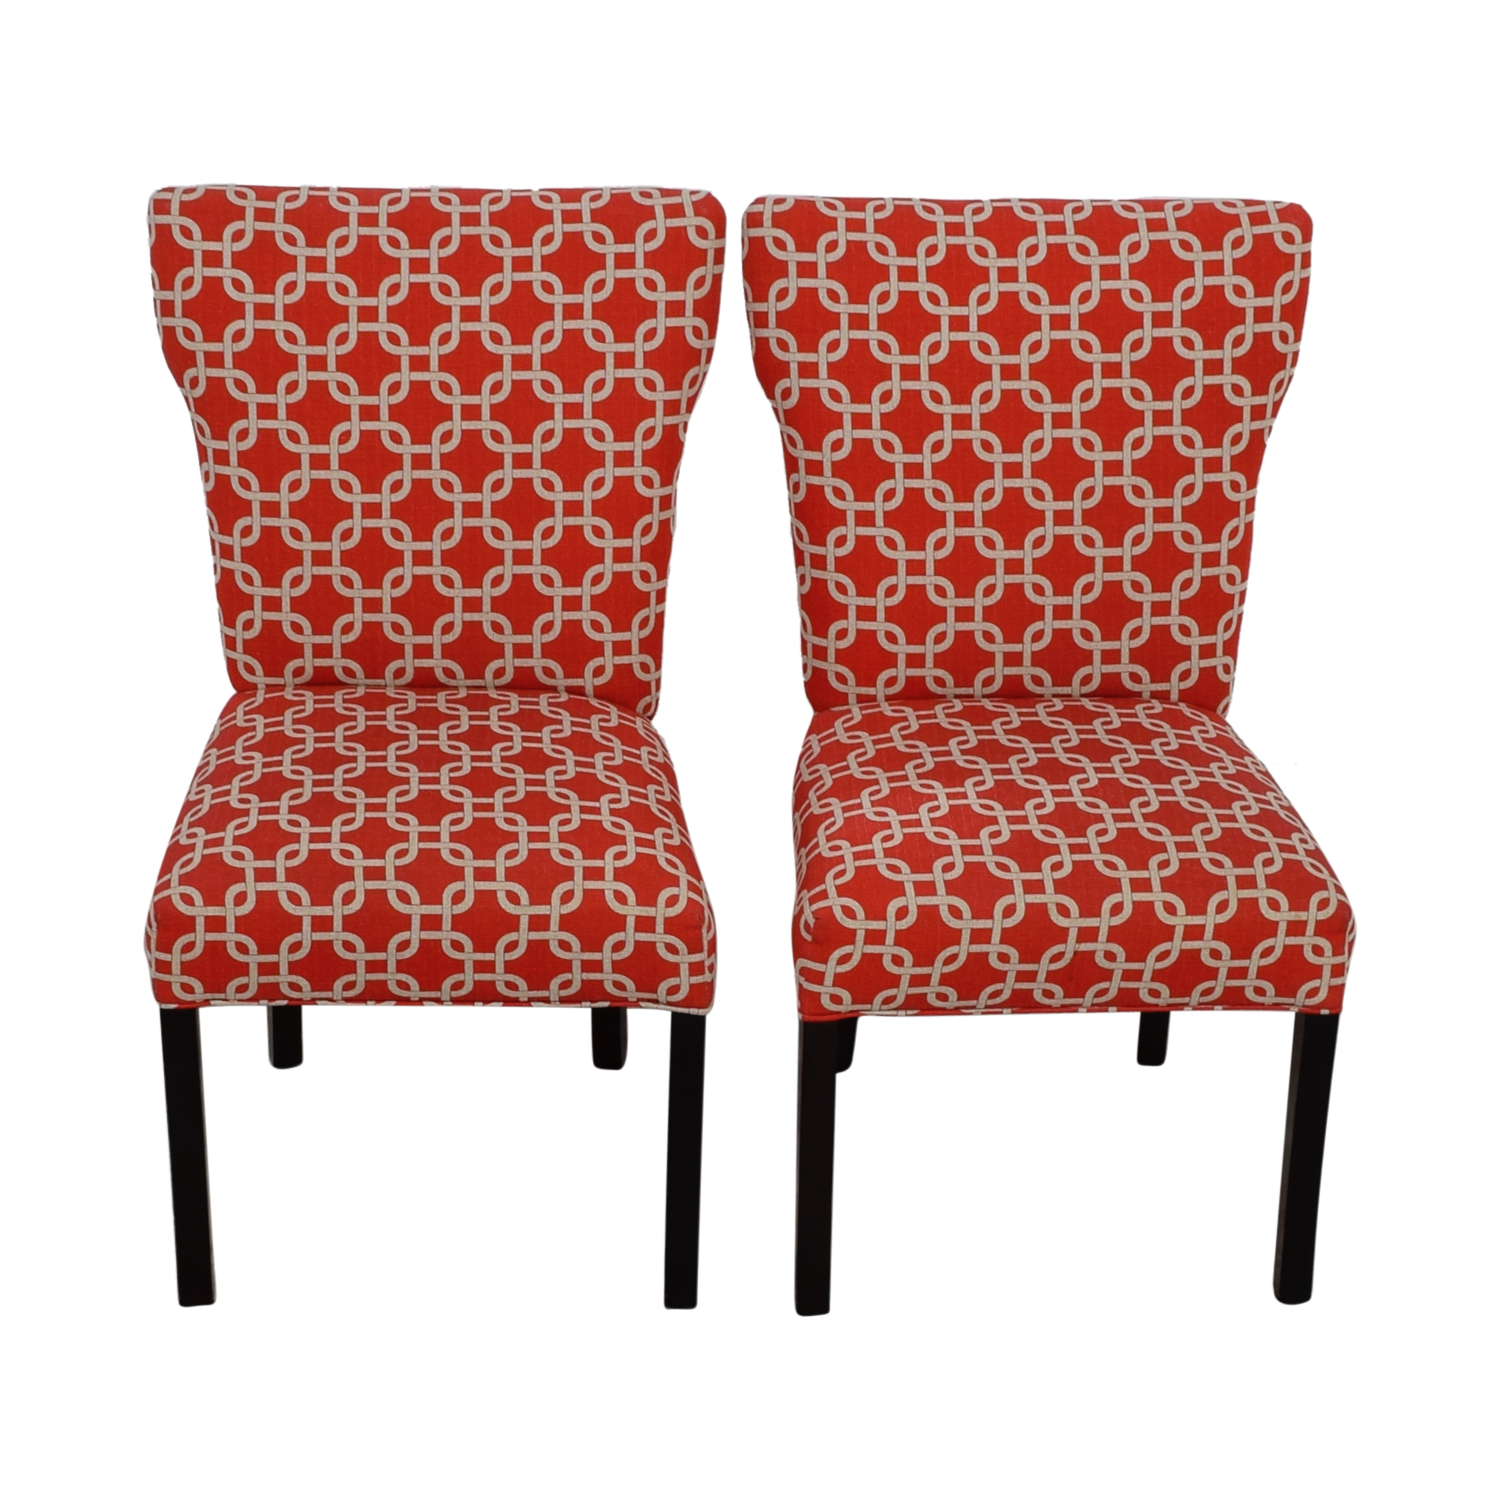 Red And White Accent Chair 67 Off Red And White Accent Chairs Chairs